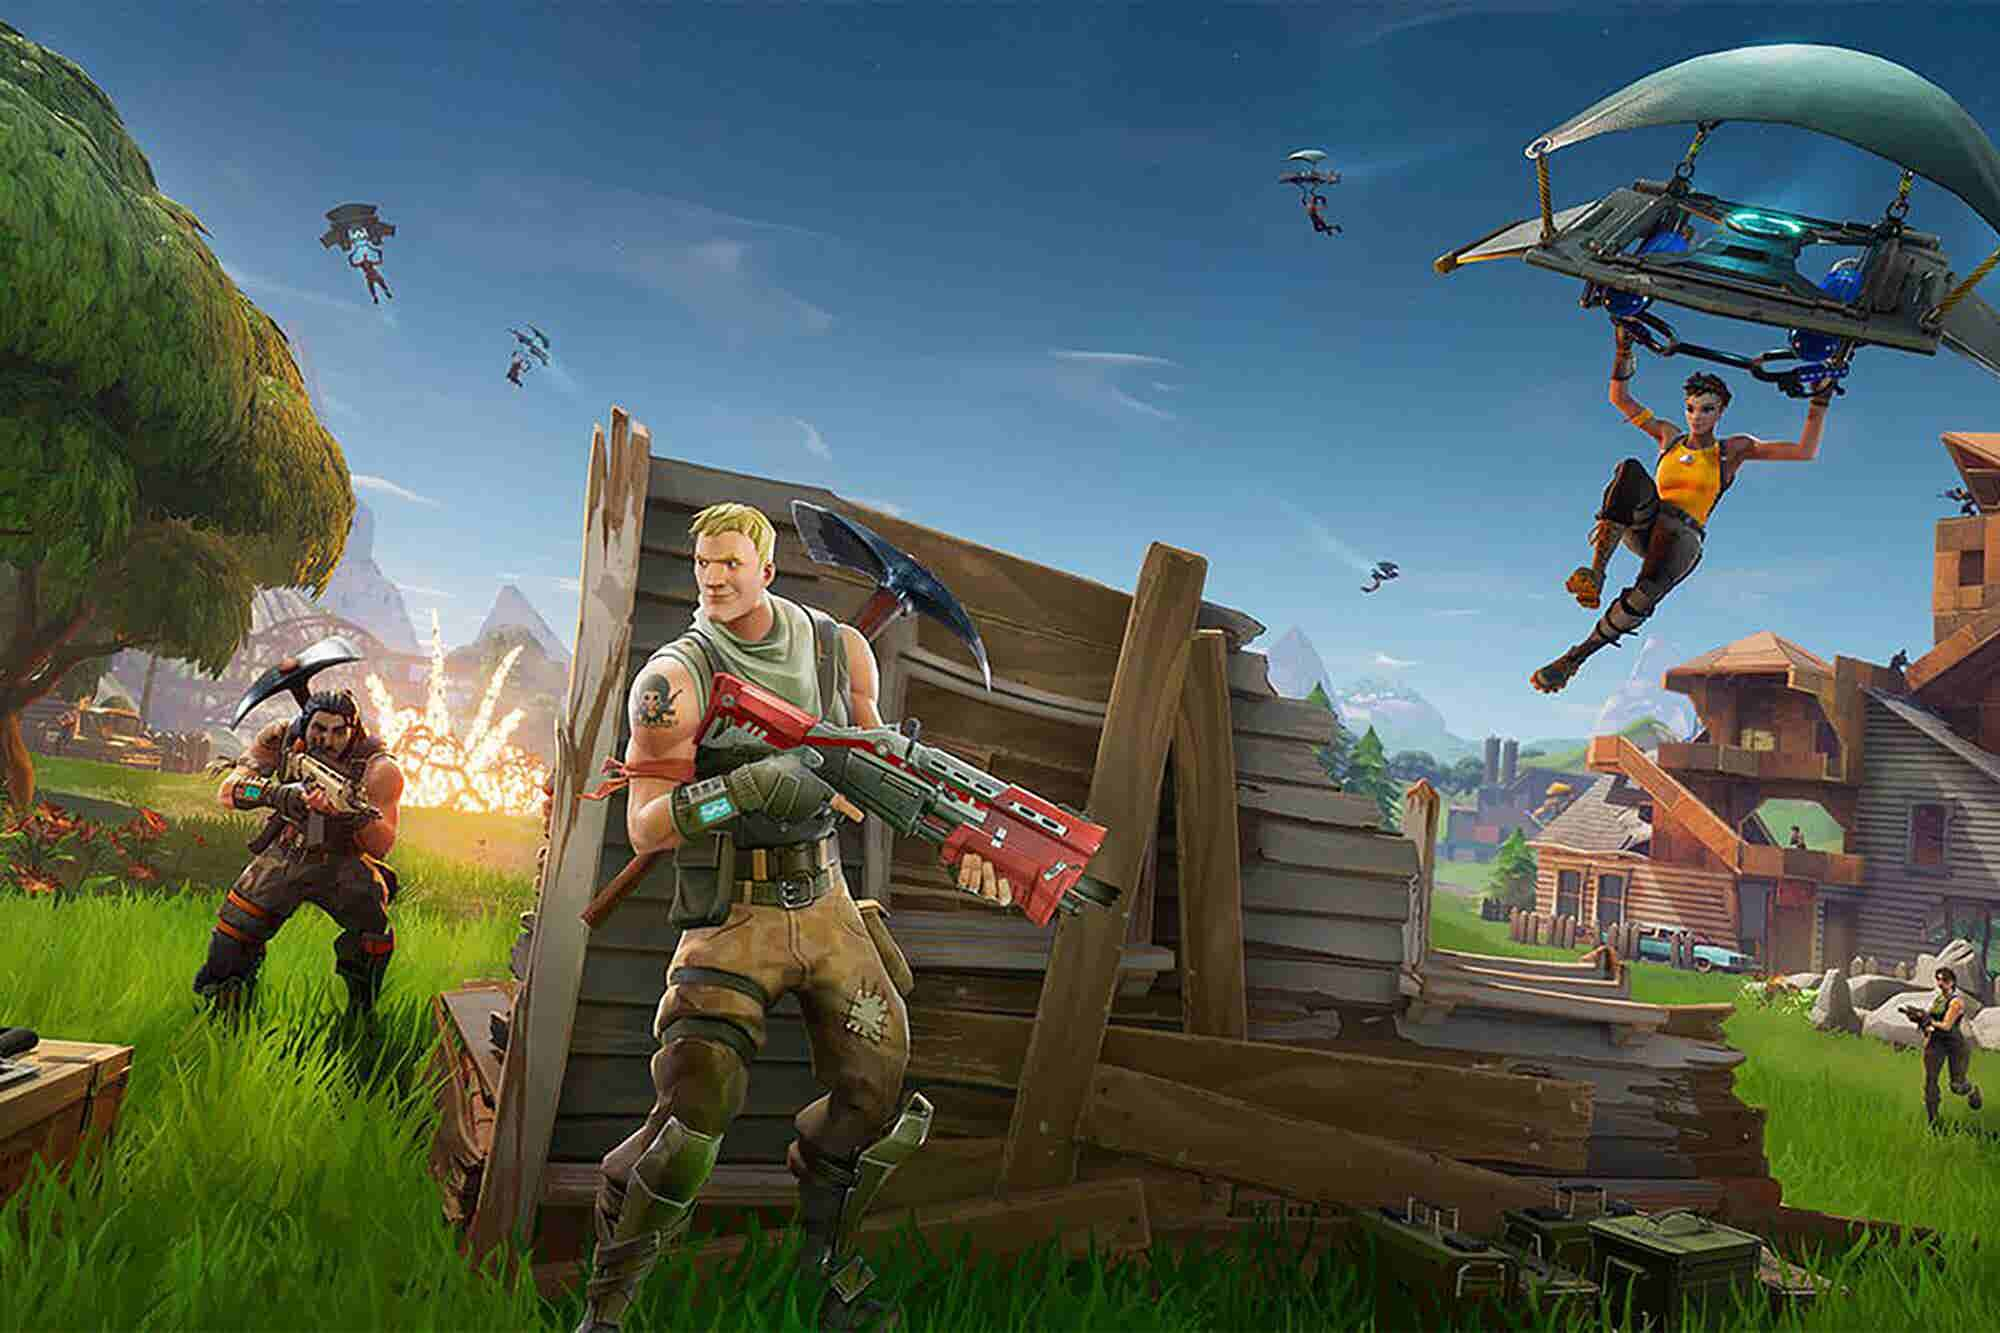 Drop in and Load up: Business Lessons From 'Fortnite' That You Won't Get From Business School